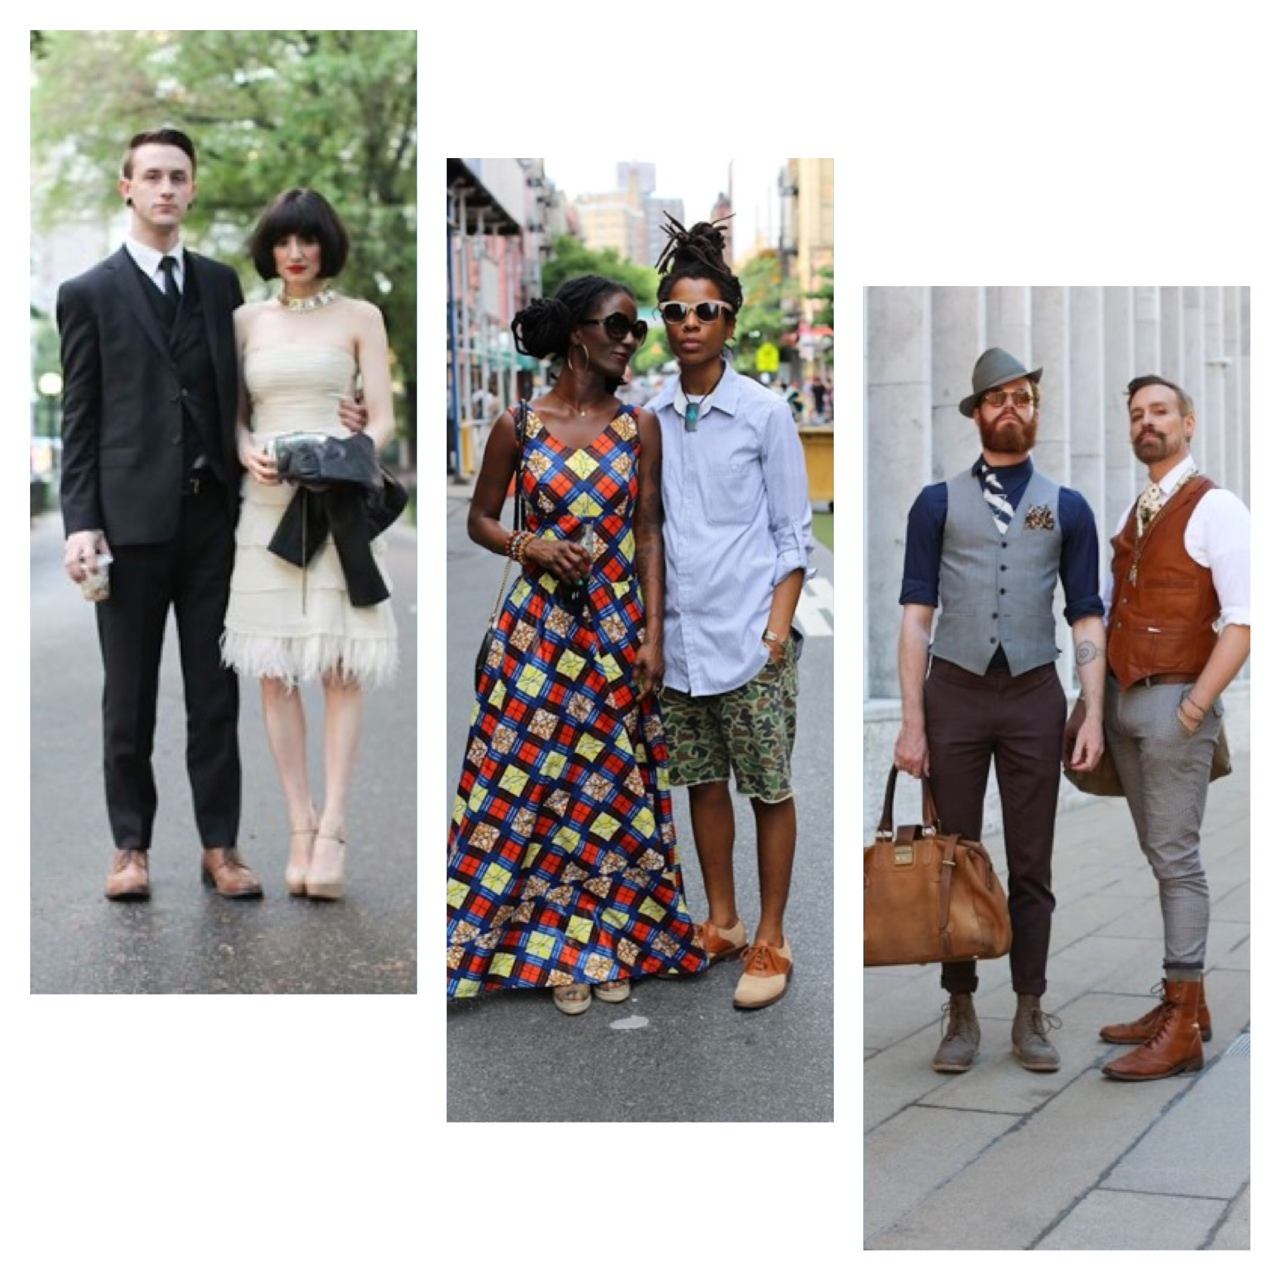 I love how these duos compliment each other's style.